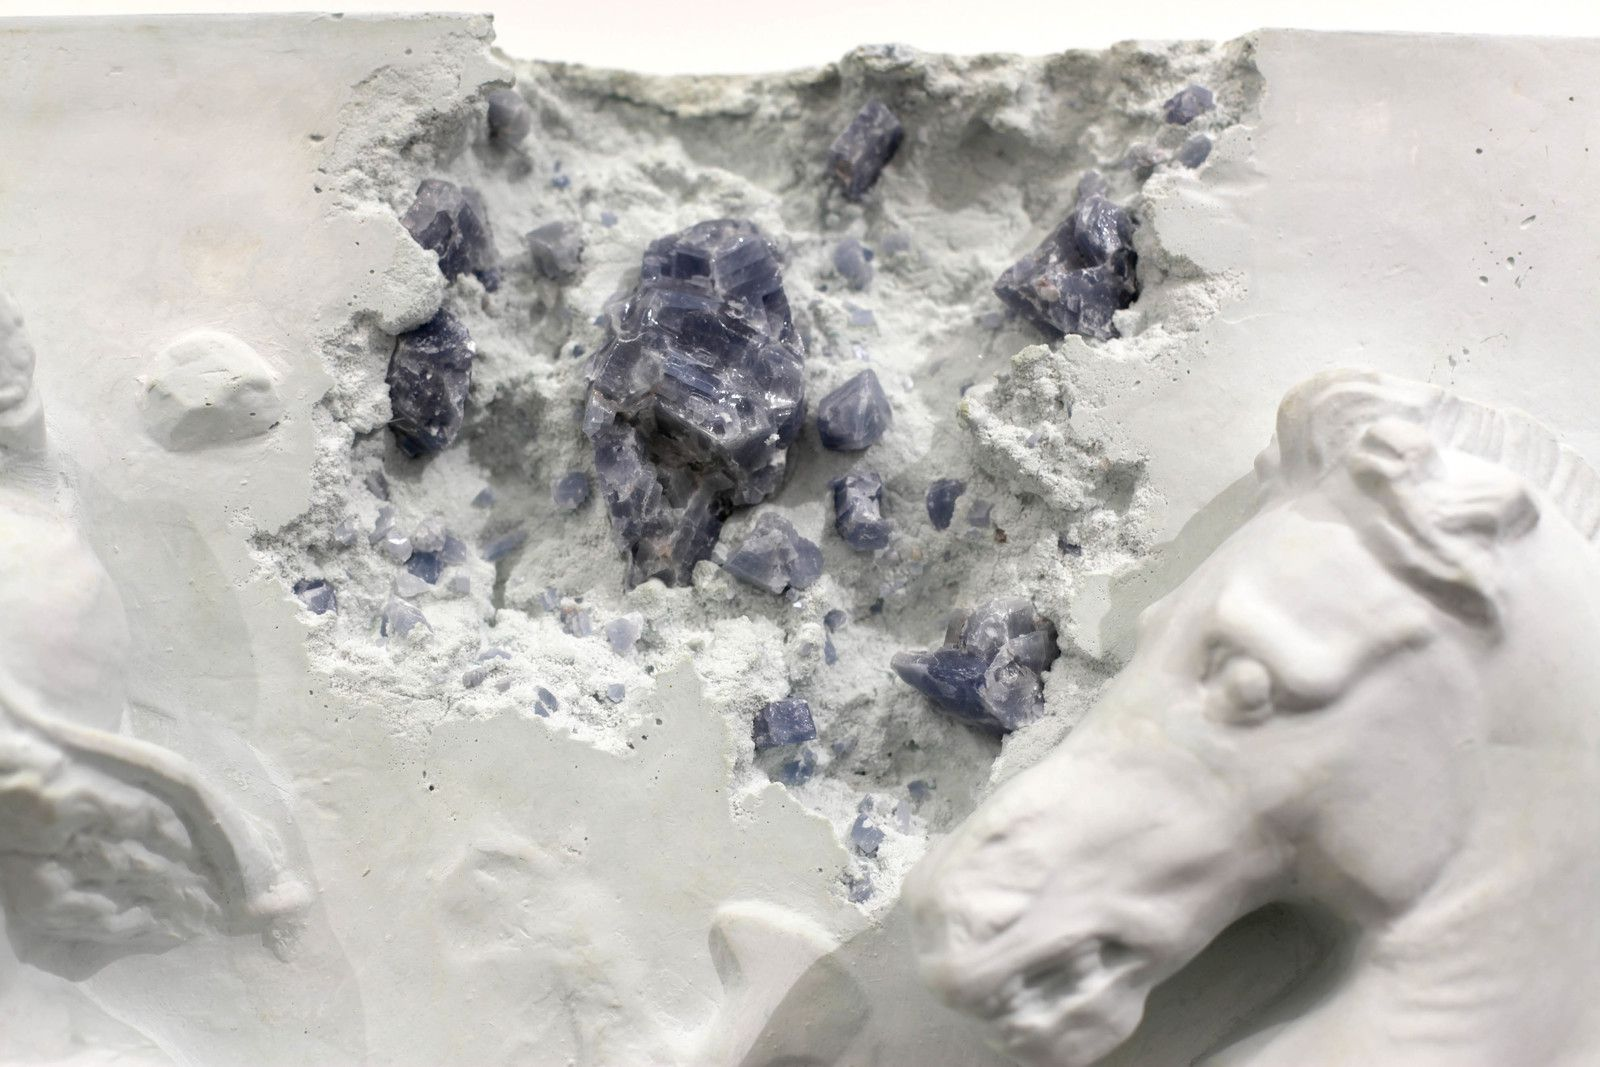 "Détail ""Blue Calcite Eroded Sarcophagus with Nereids"", 2019 de Daniel ARSHAM - Courtesy de l'artiste et la galerie Perrotin © Photo Éric Simon"